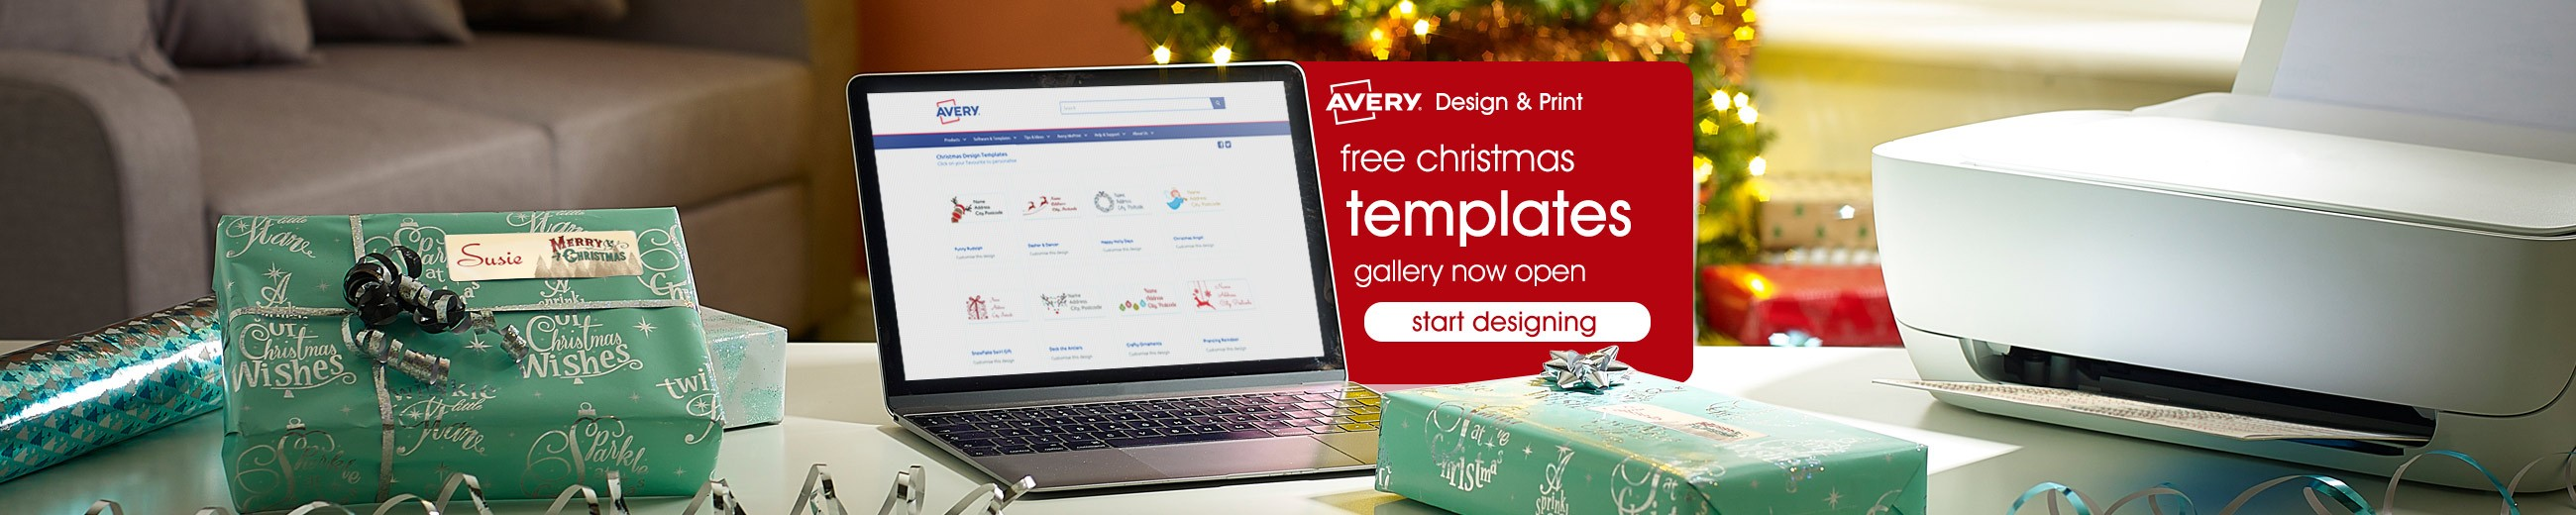 Our FREE Christmas template gallery is now open